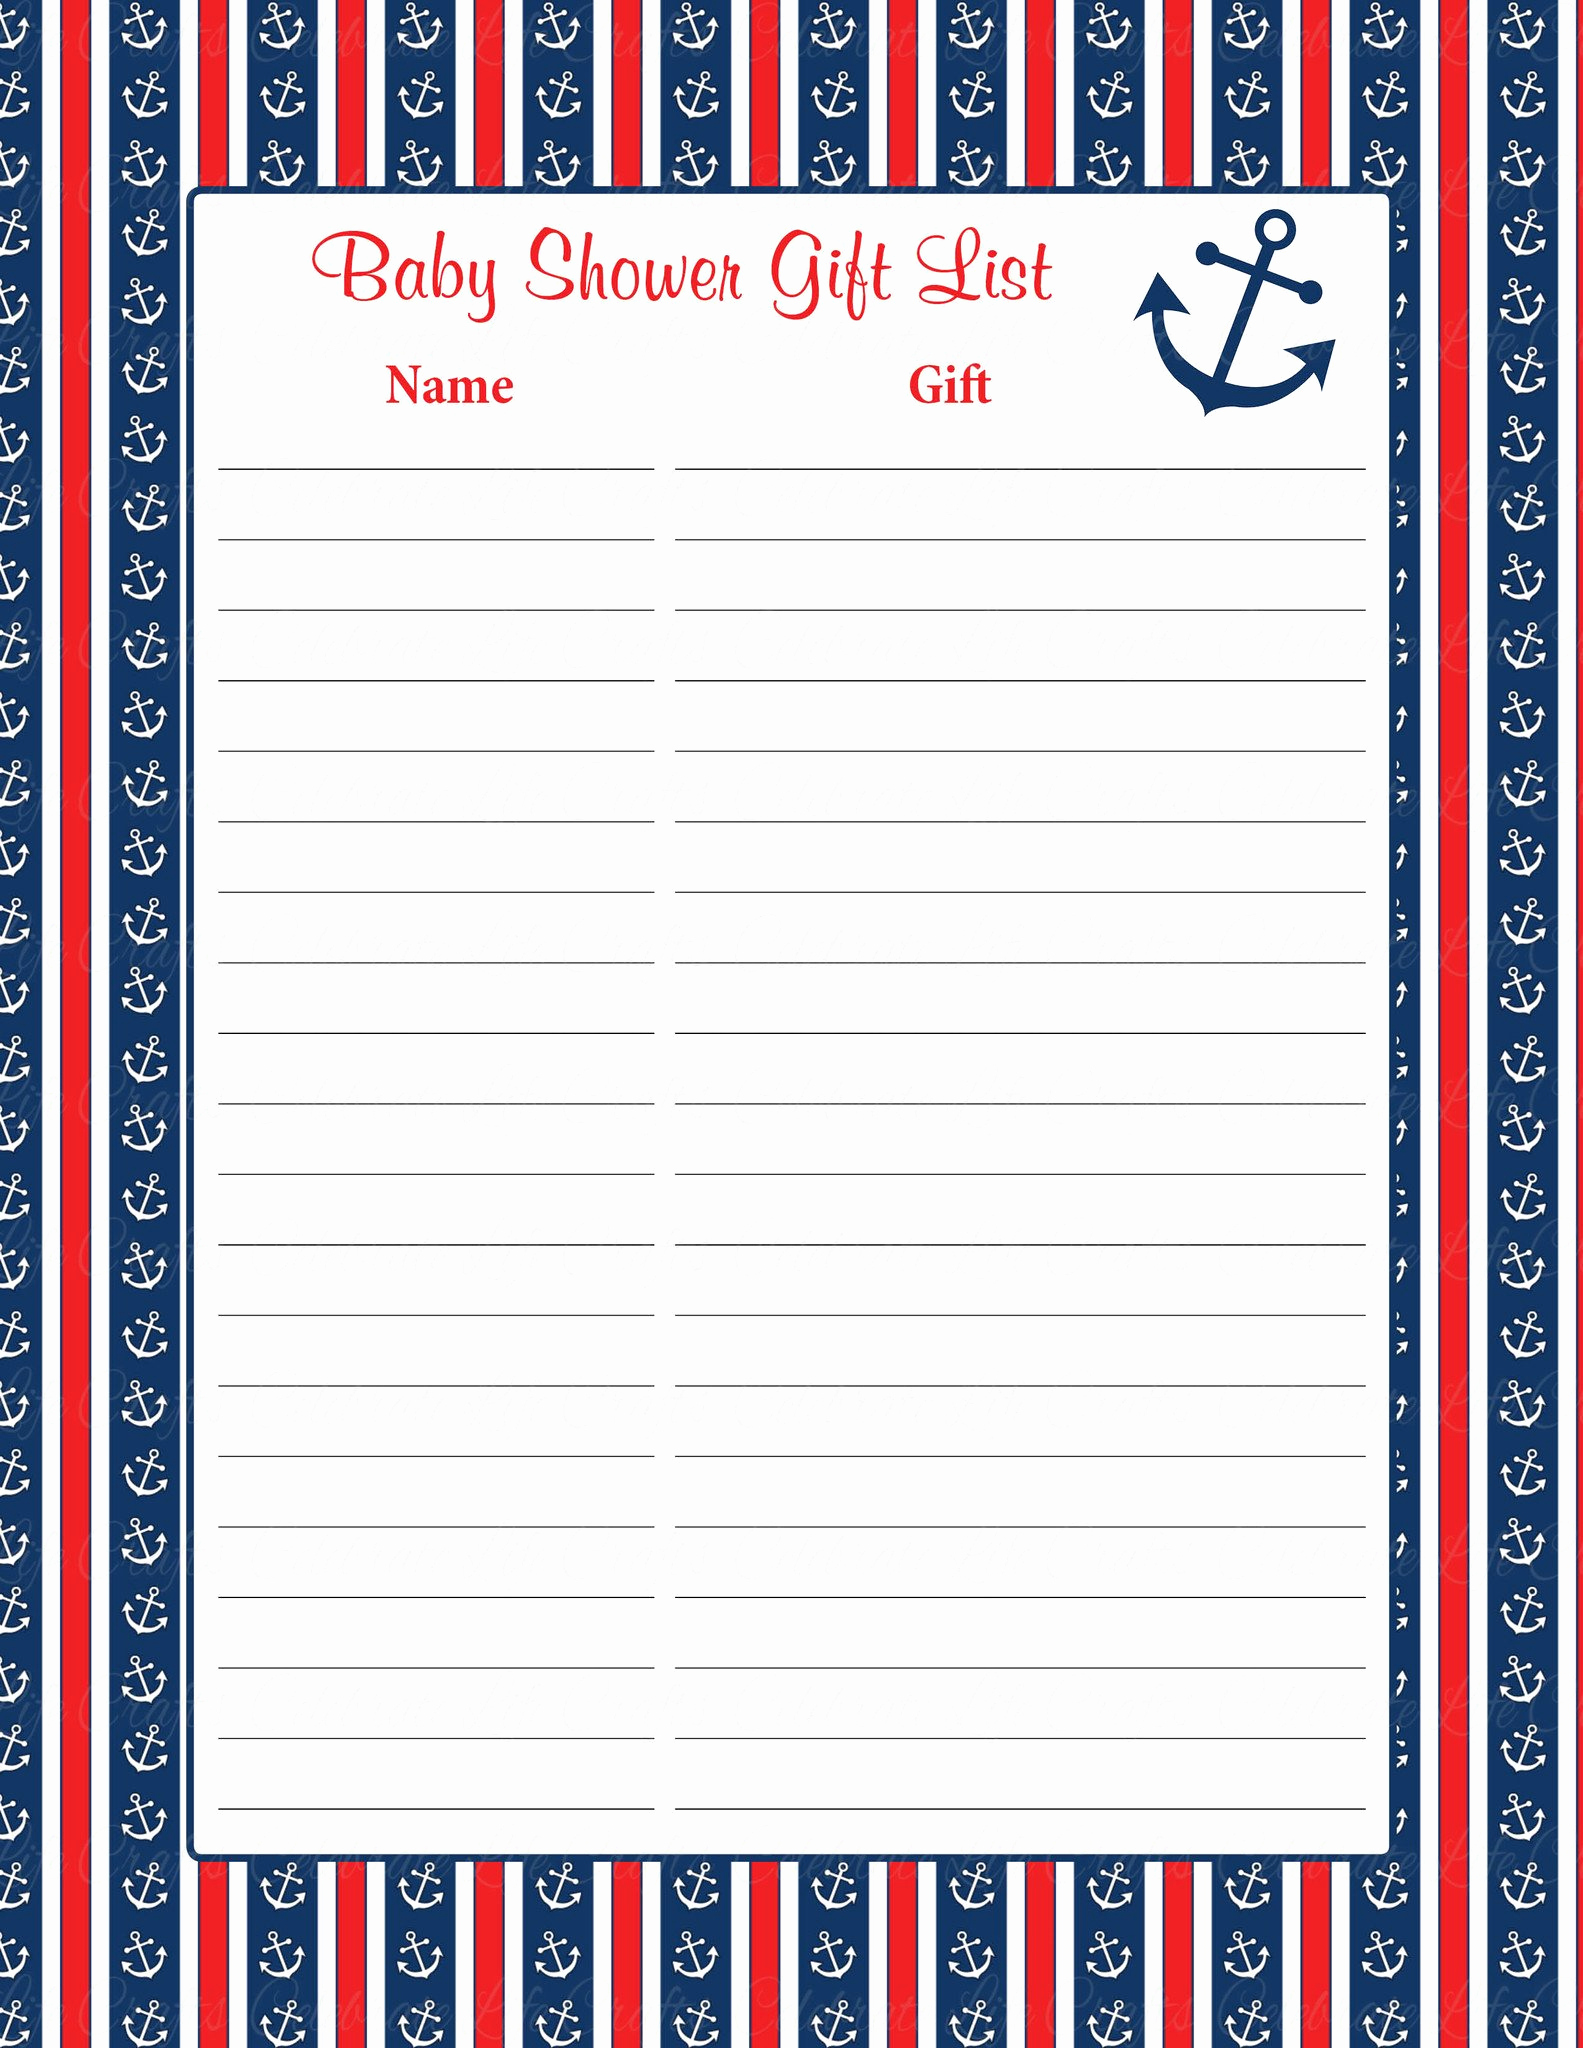 Baby Shower Invitation List New Baby Shower Gift List Nautical Baby Shower theme for